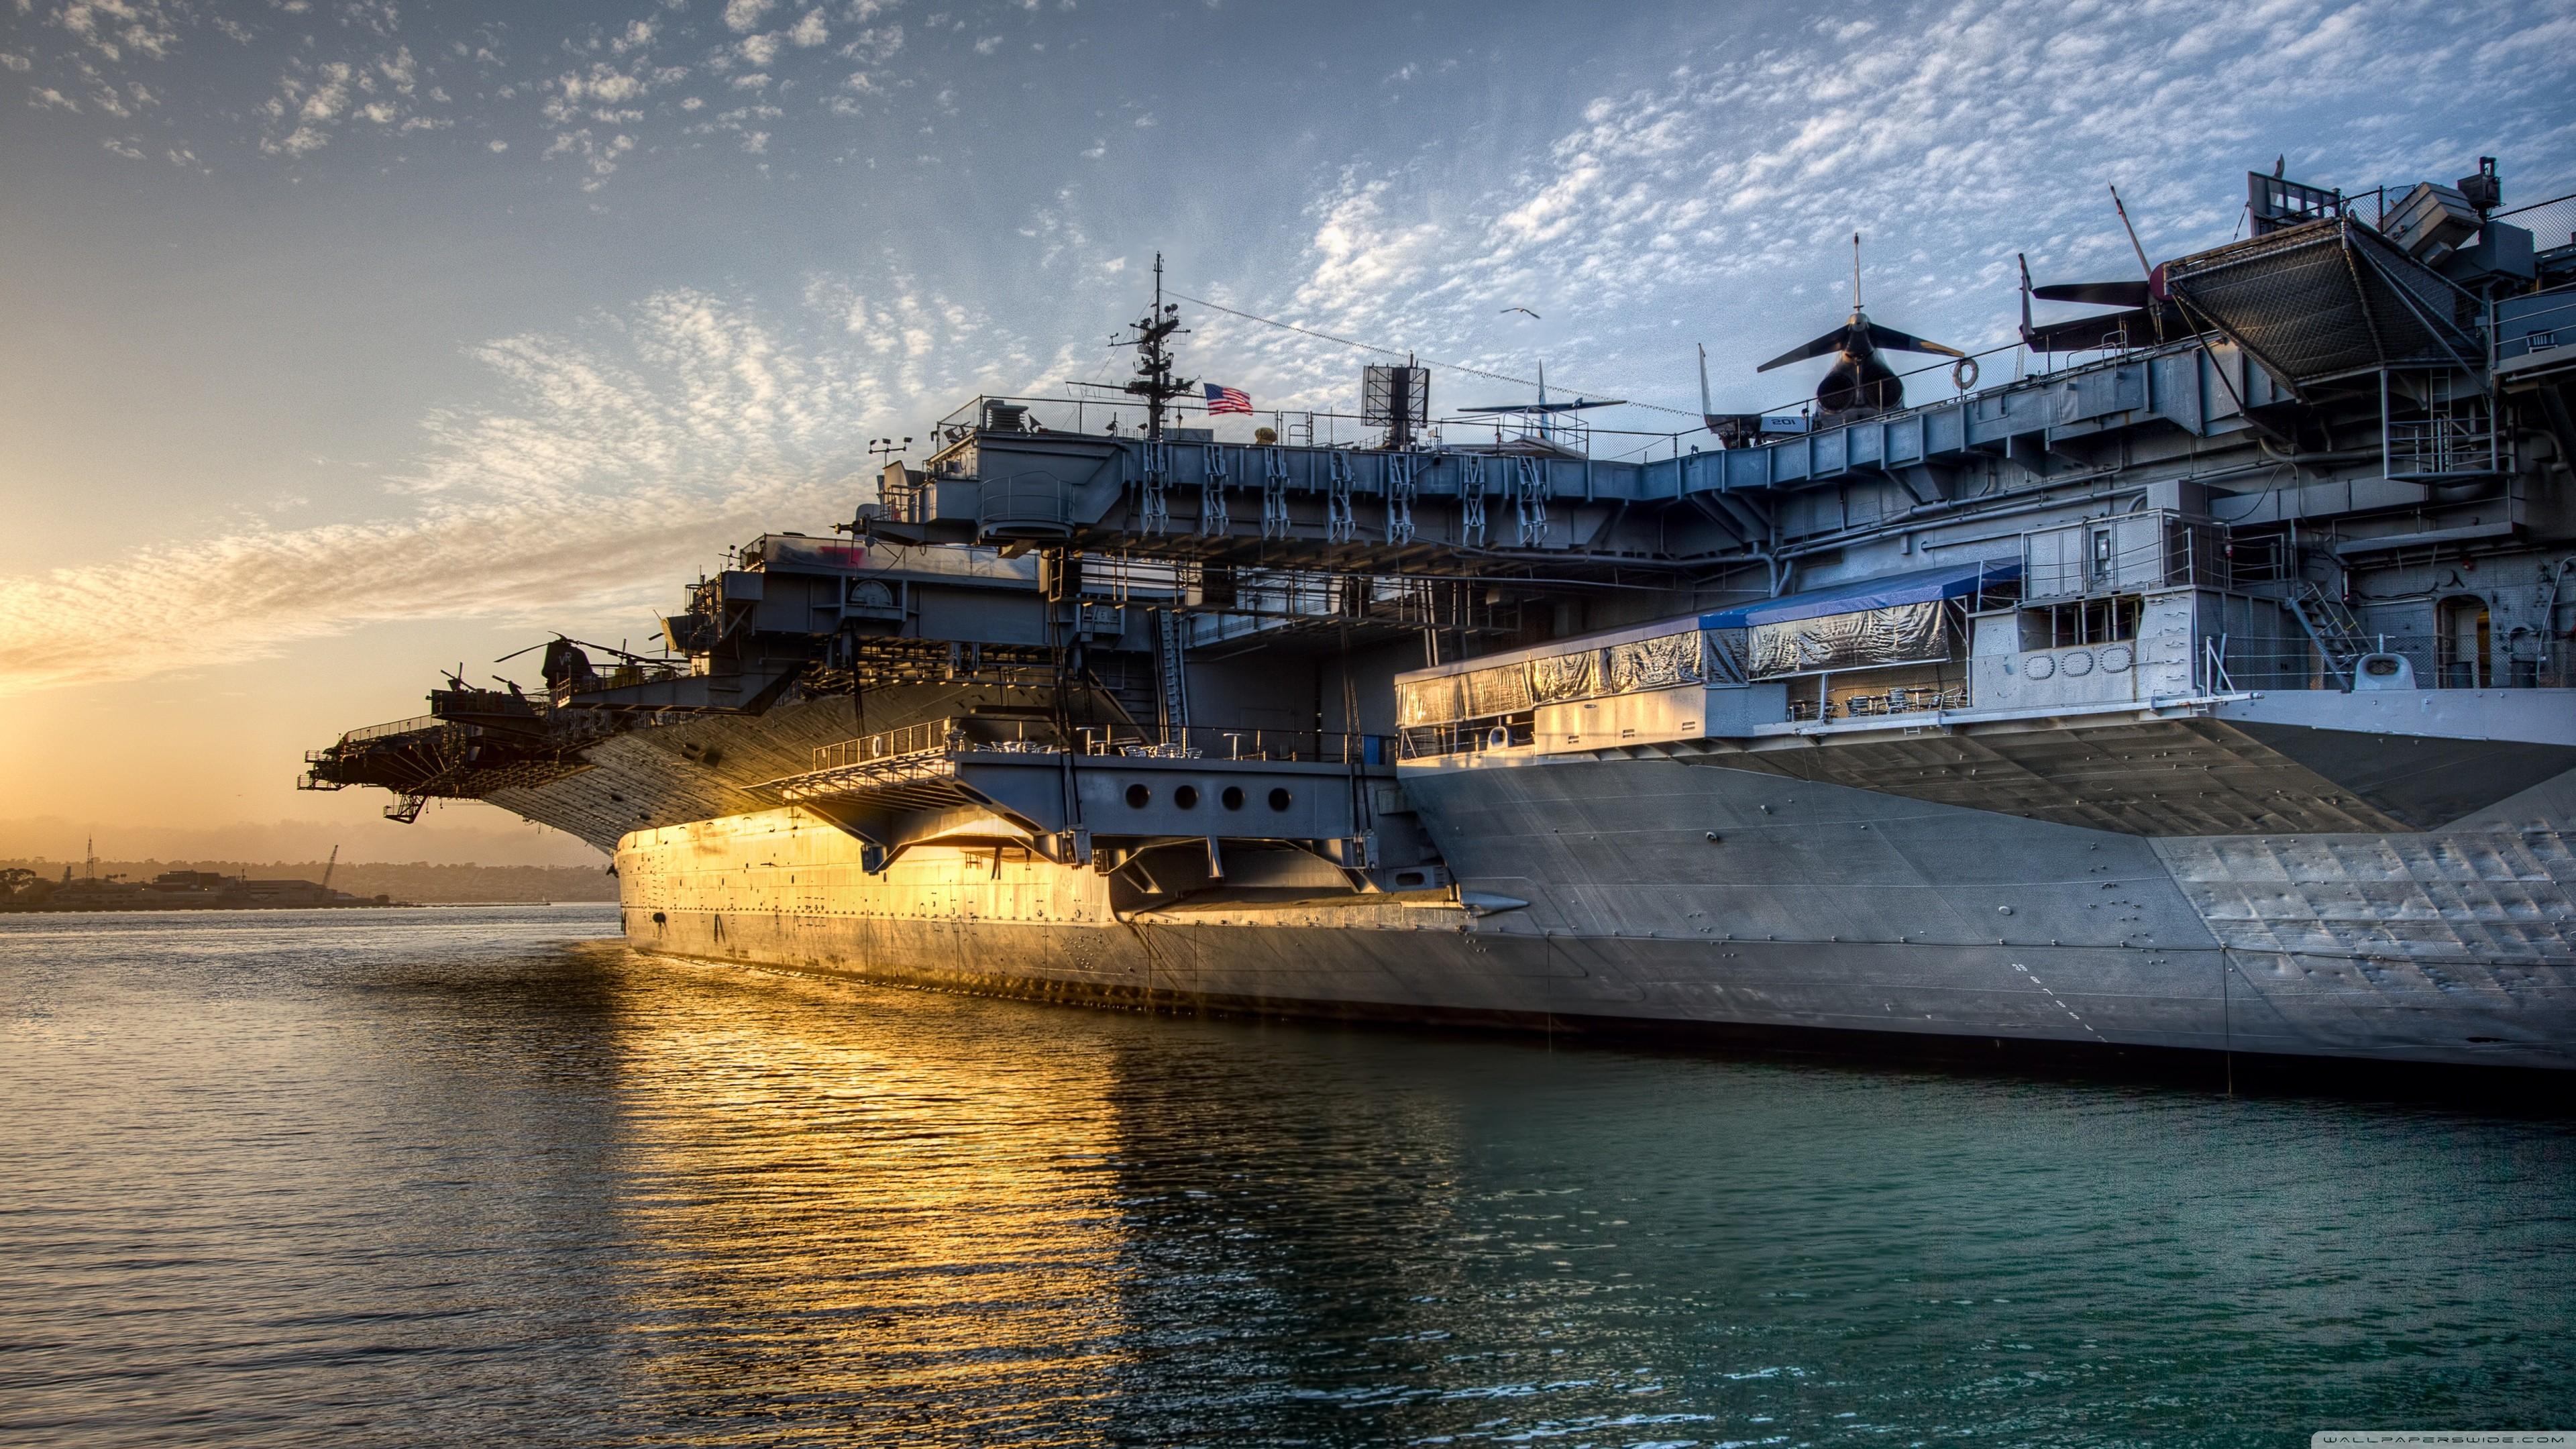 General 3840x2160 sunset military base military aircraft aircraft carrier ship water USS Midway aircraft sea